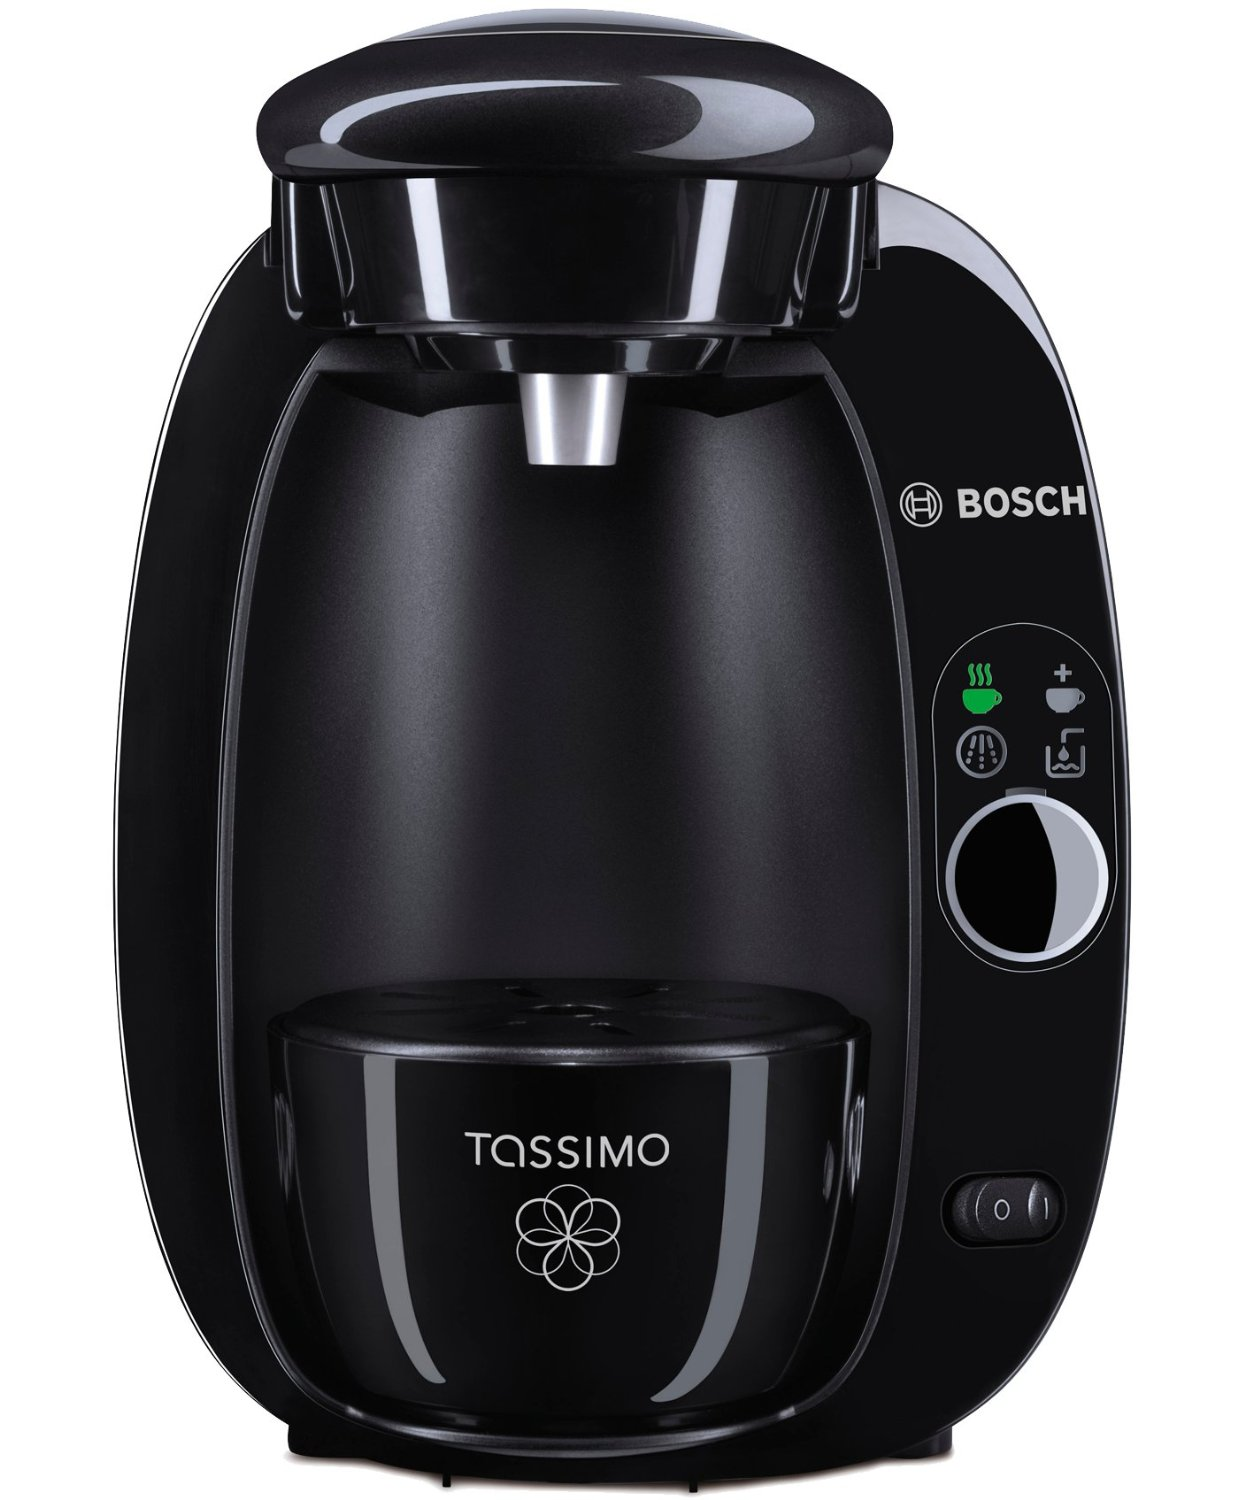 amazon canada deals save 65 off bosch tassimo t20 home brewing system now only free. Black Bedroom Furniture Sets. Home Design Ideas